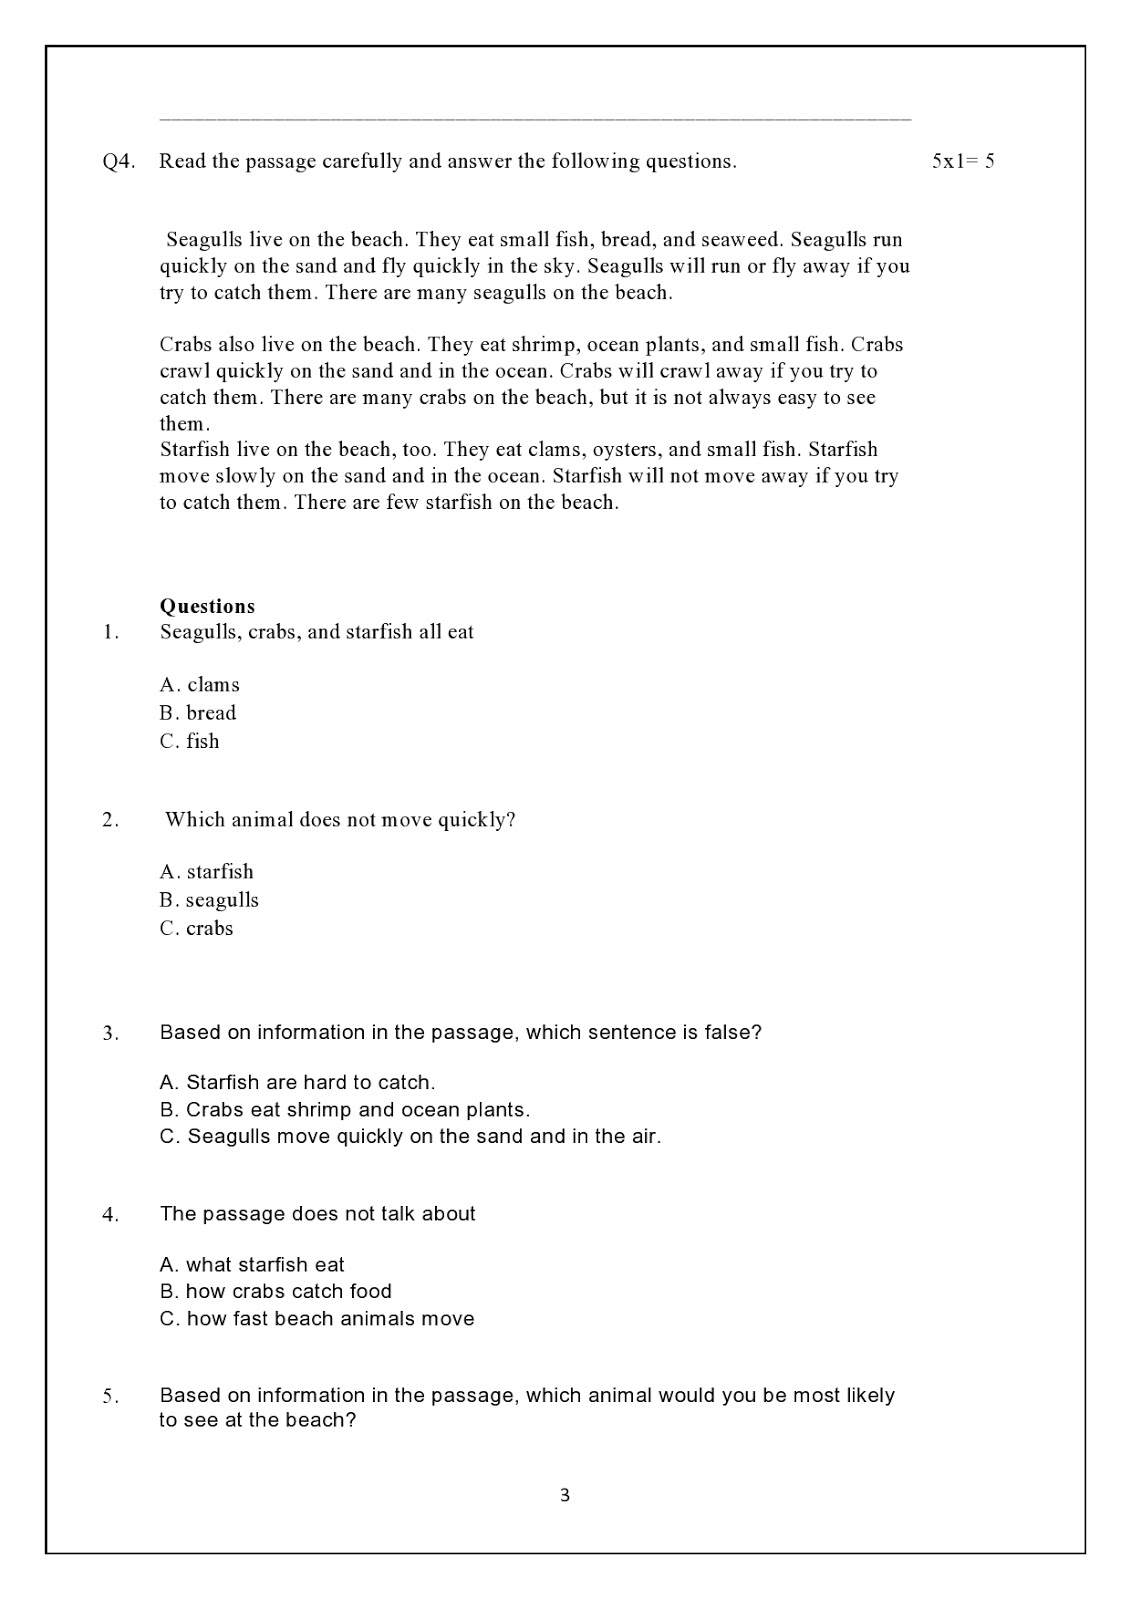 Birla World School Oman Revision Worksheet For Grade 3 B